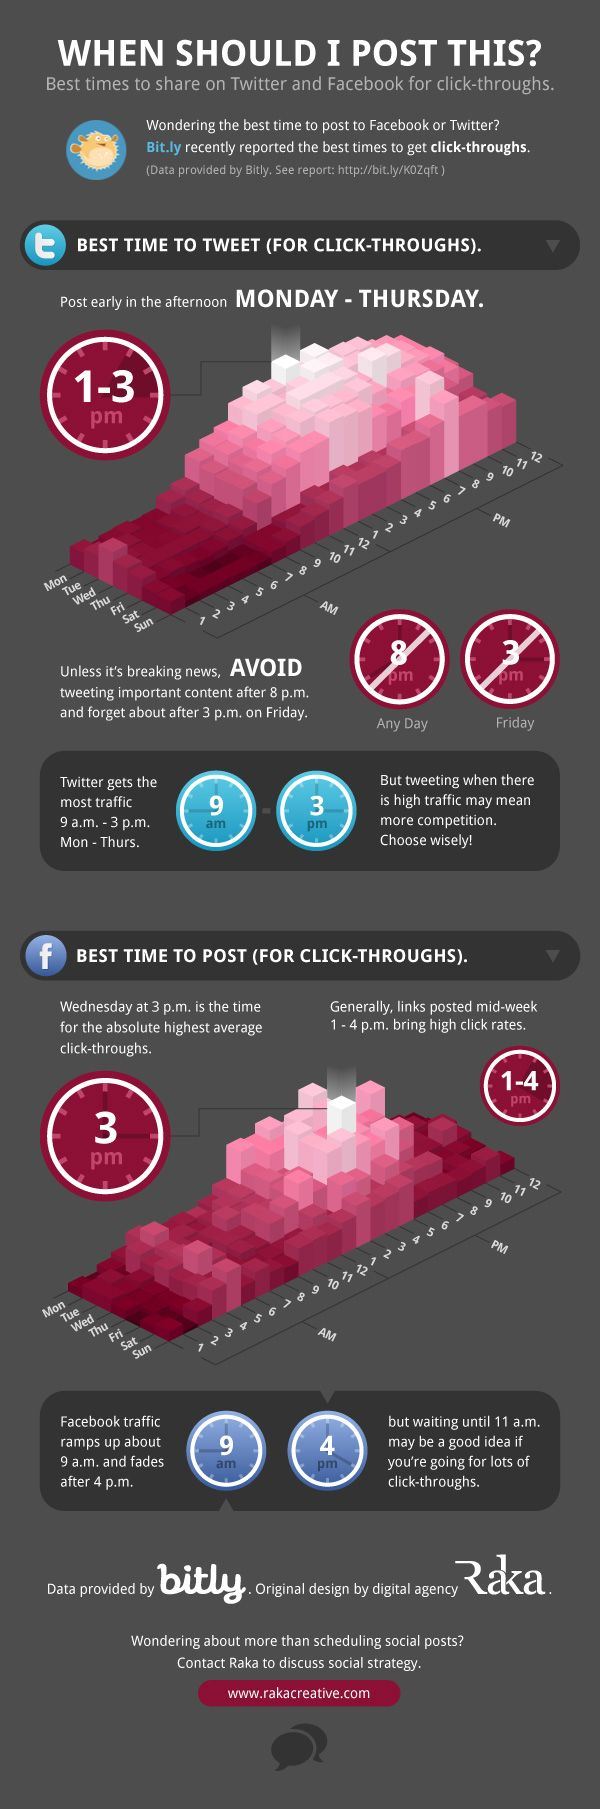 If You Want Clickthroughs, When Is The Best Time To Tweet? [INFOGRAPHIC] #SXSH